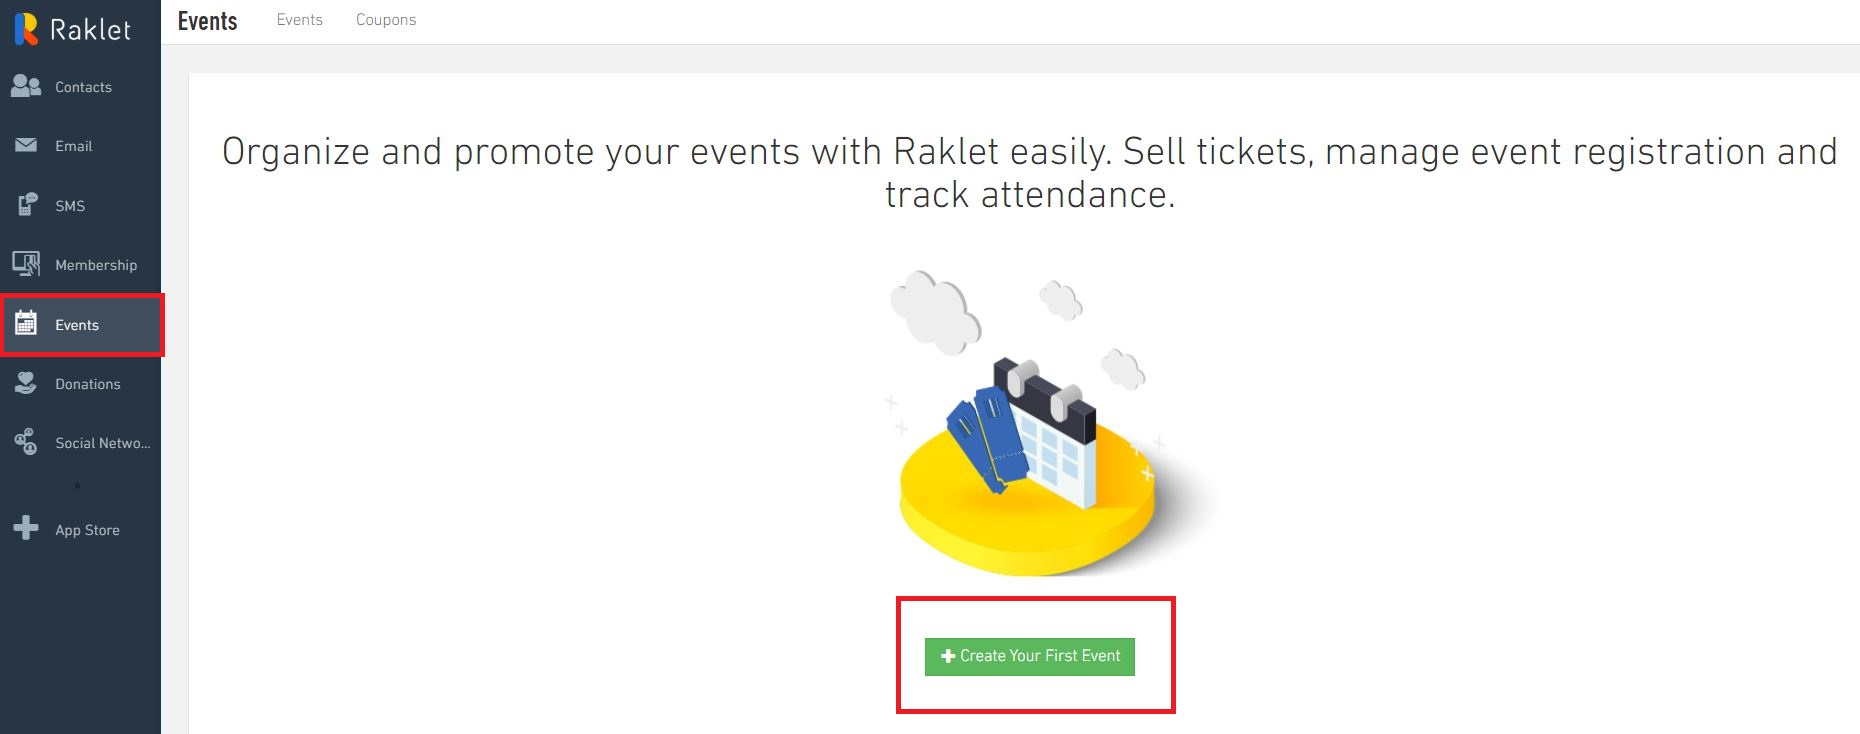 Creating Events, go to Events section, and Create Your First Event